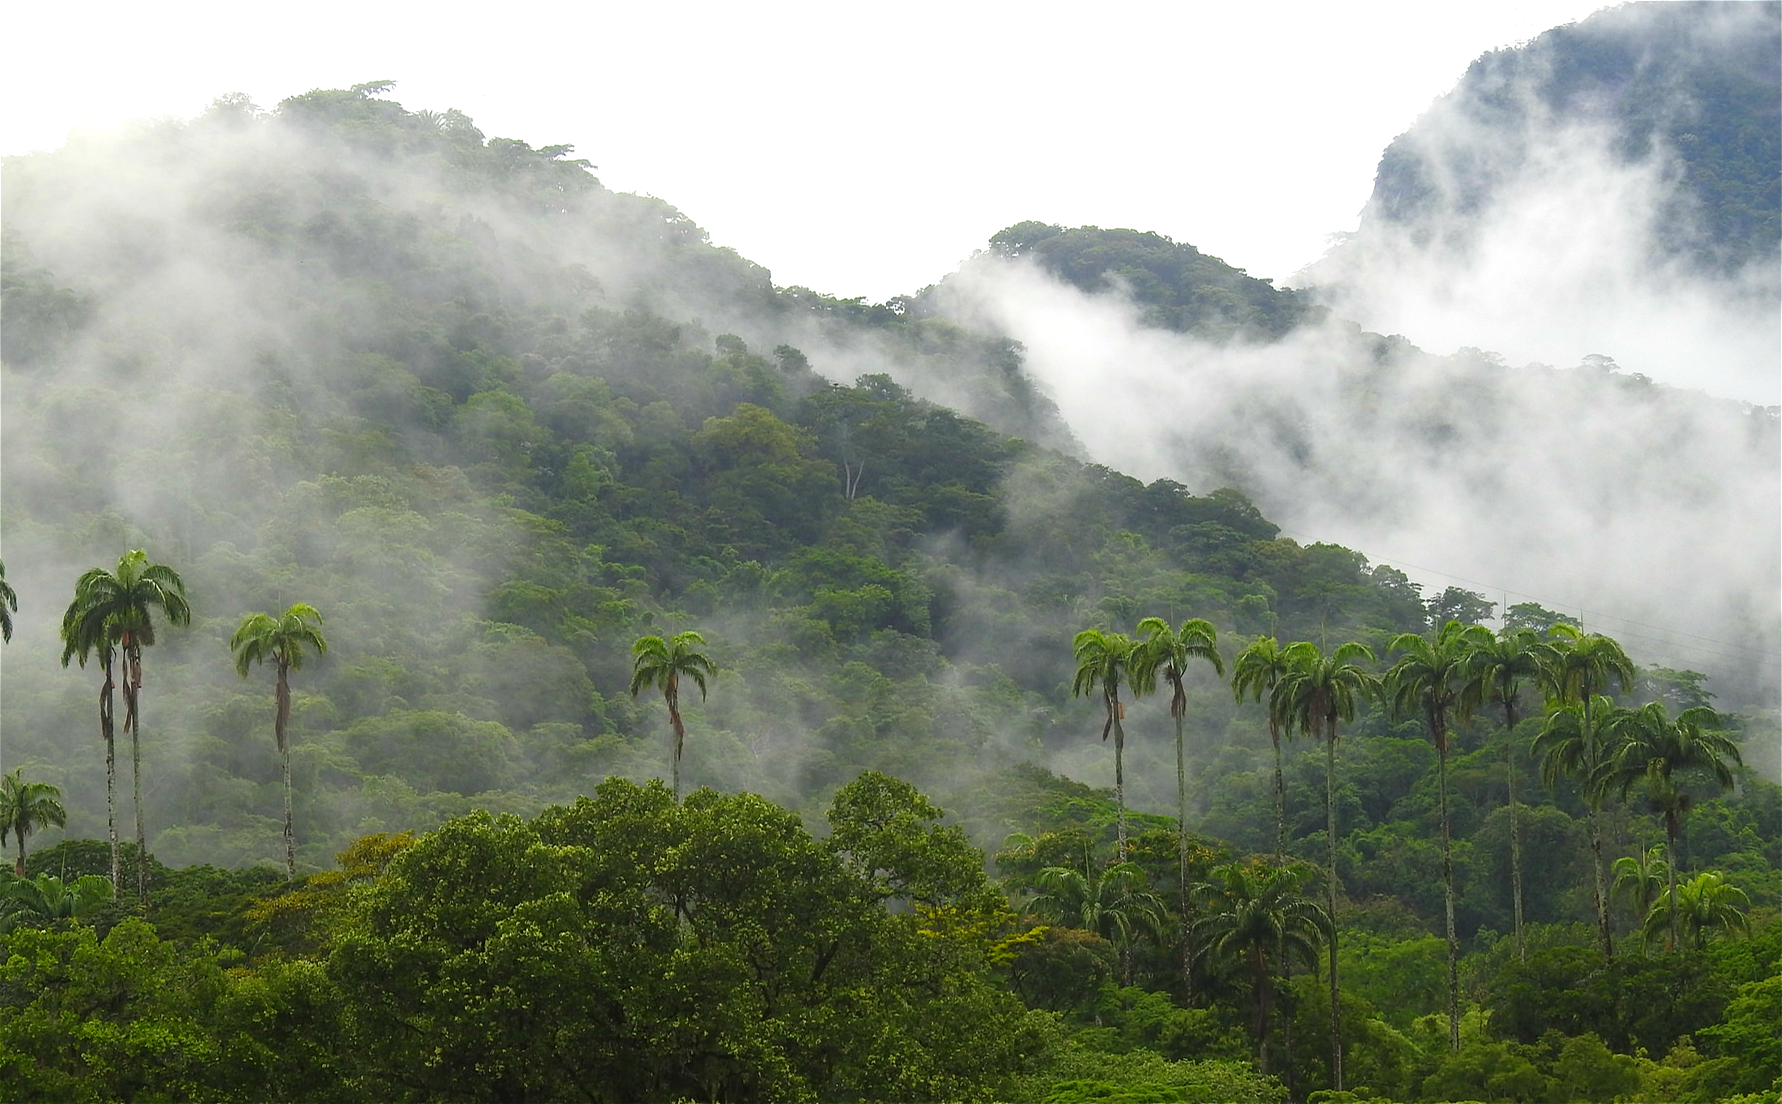 Moisture produced by the world's forests generates rainfall thousands of miles away. (Image: Felipe Süssekind)